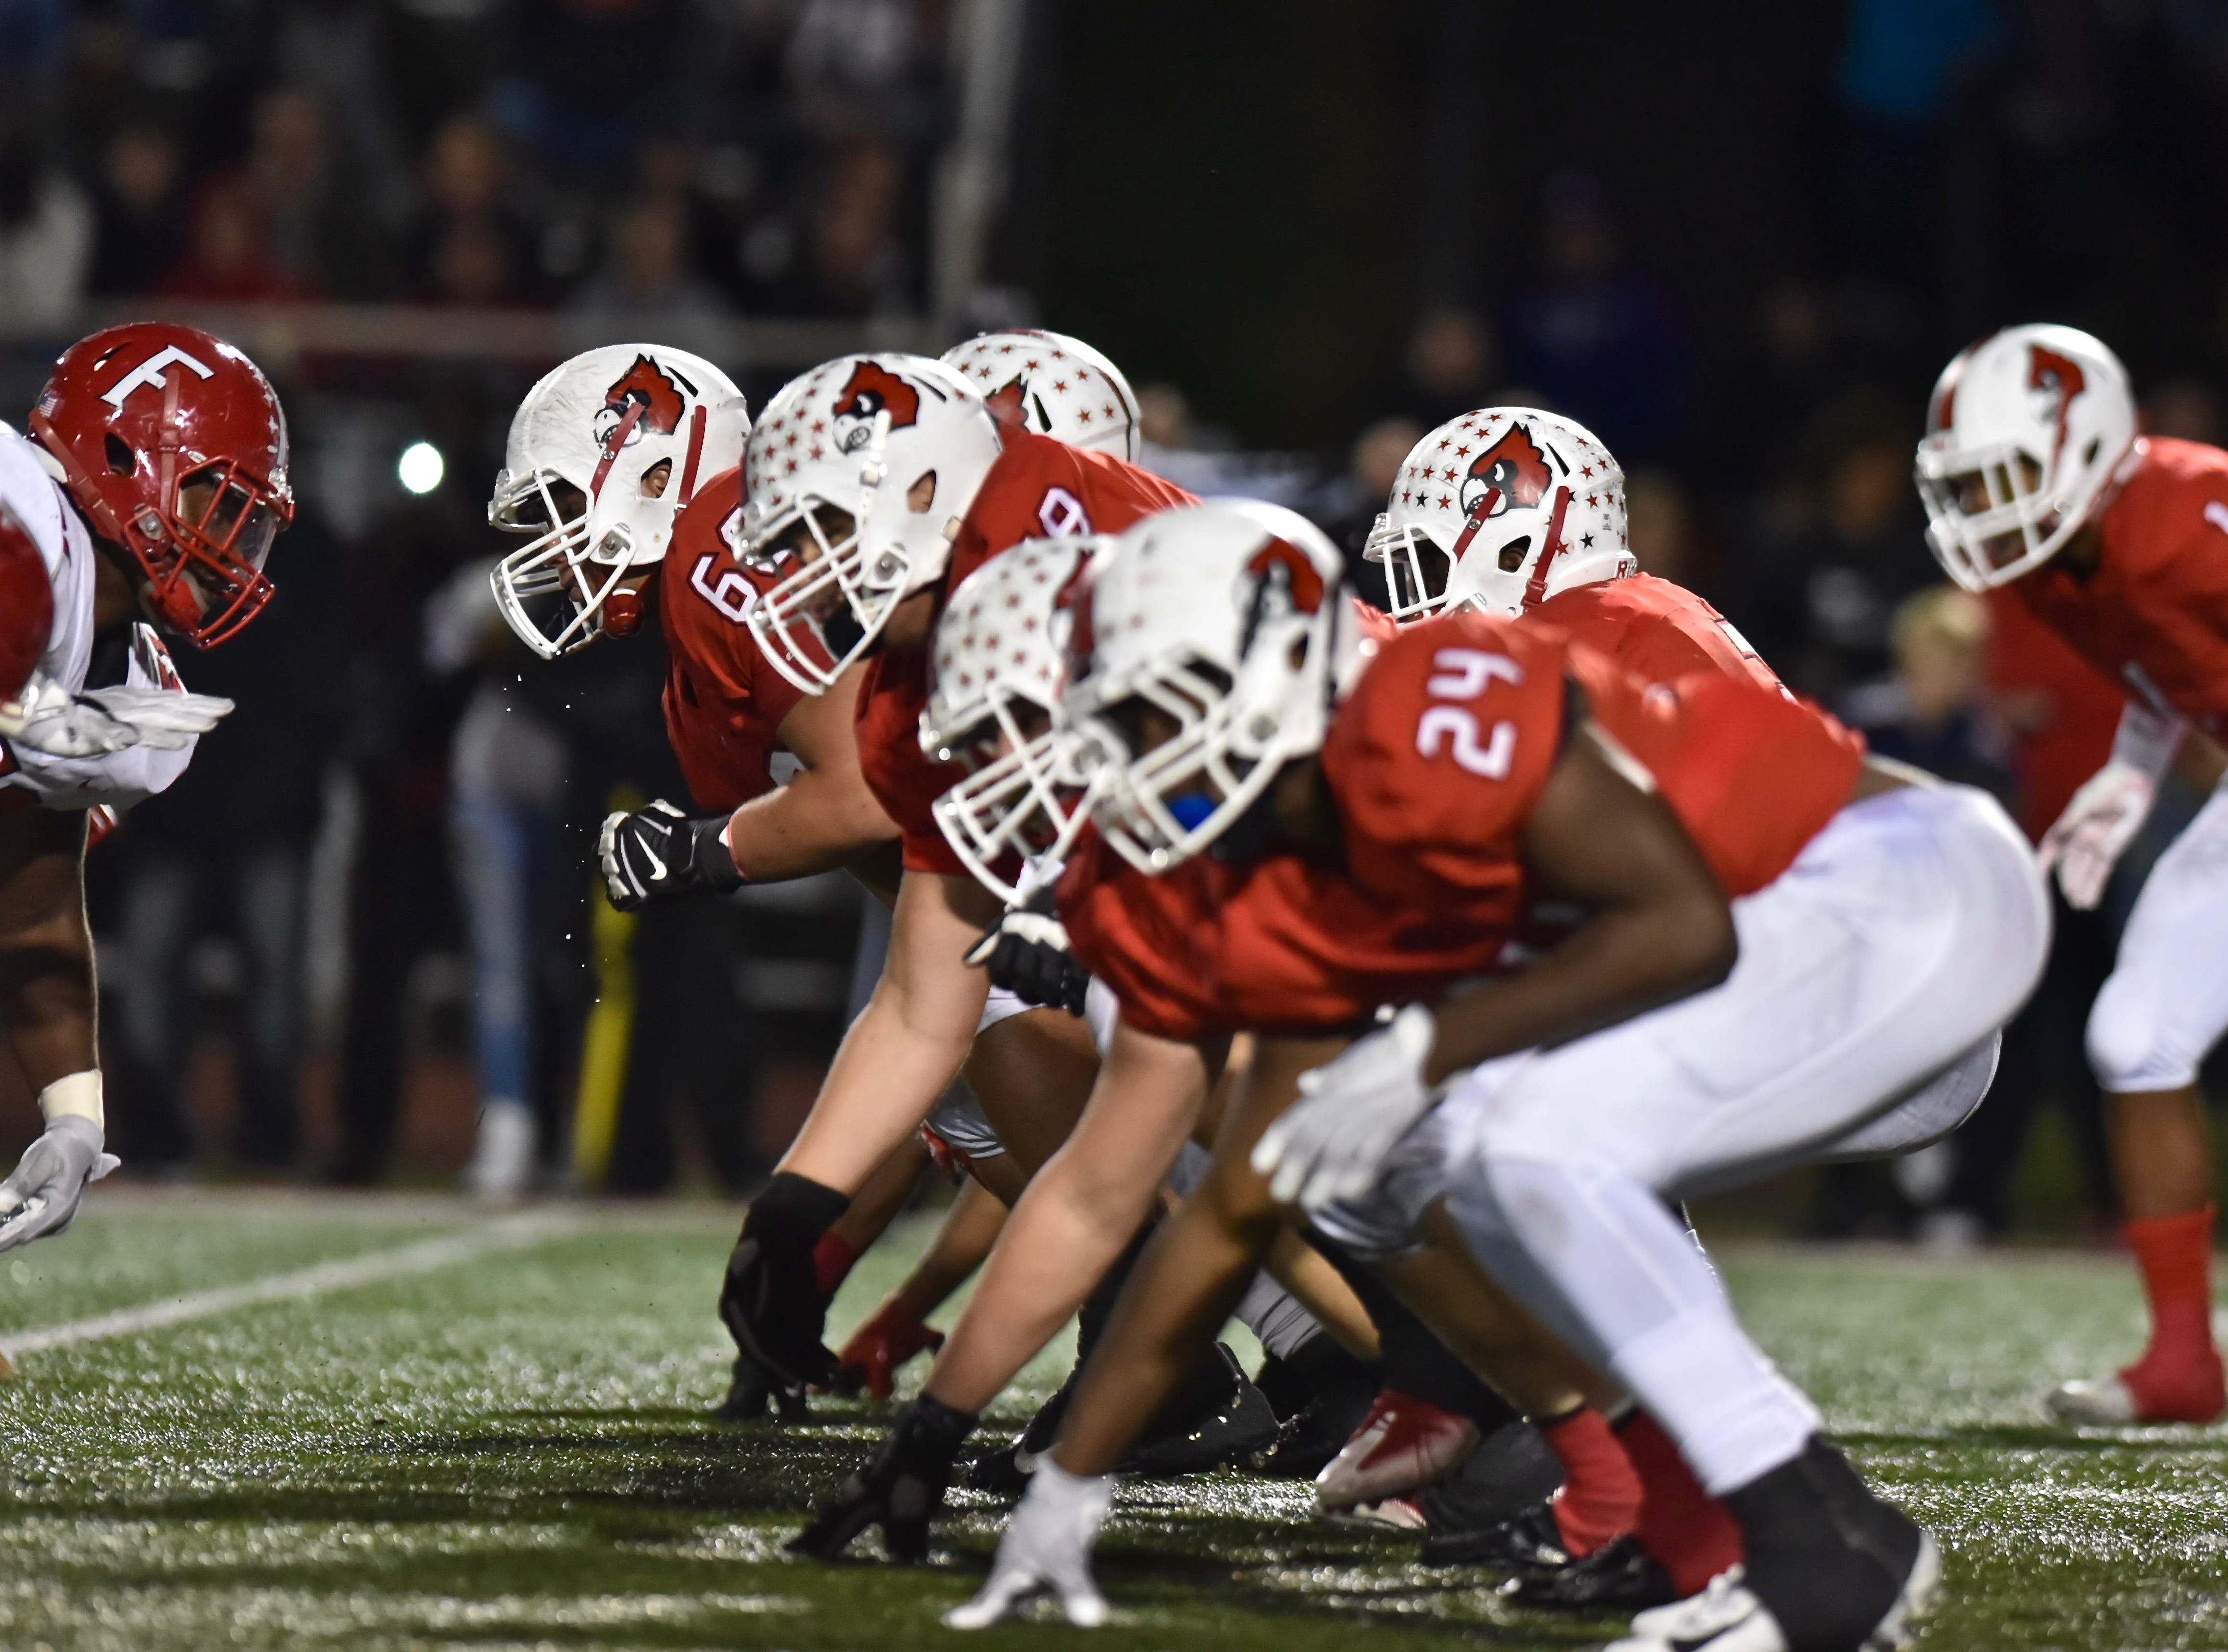 The Colerain Cardinals line up in their triple option formation against Fairfield Friday, Oct. 19, 2018 at Colerain High School